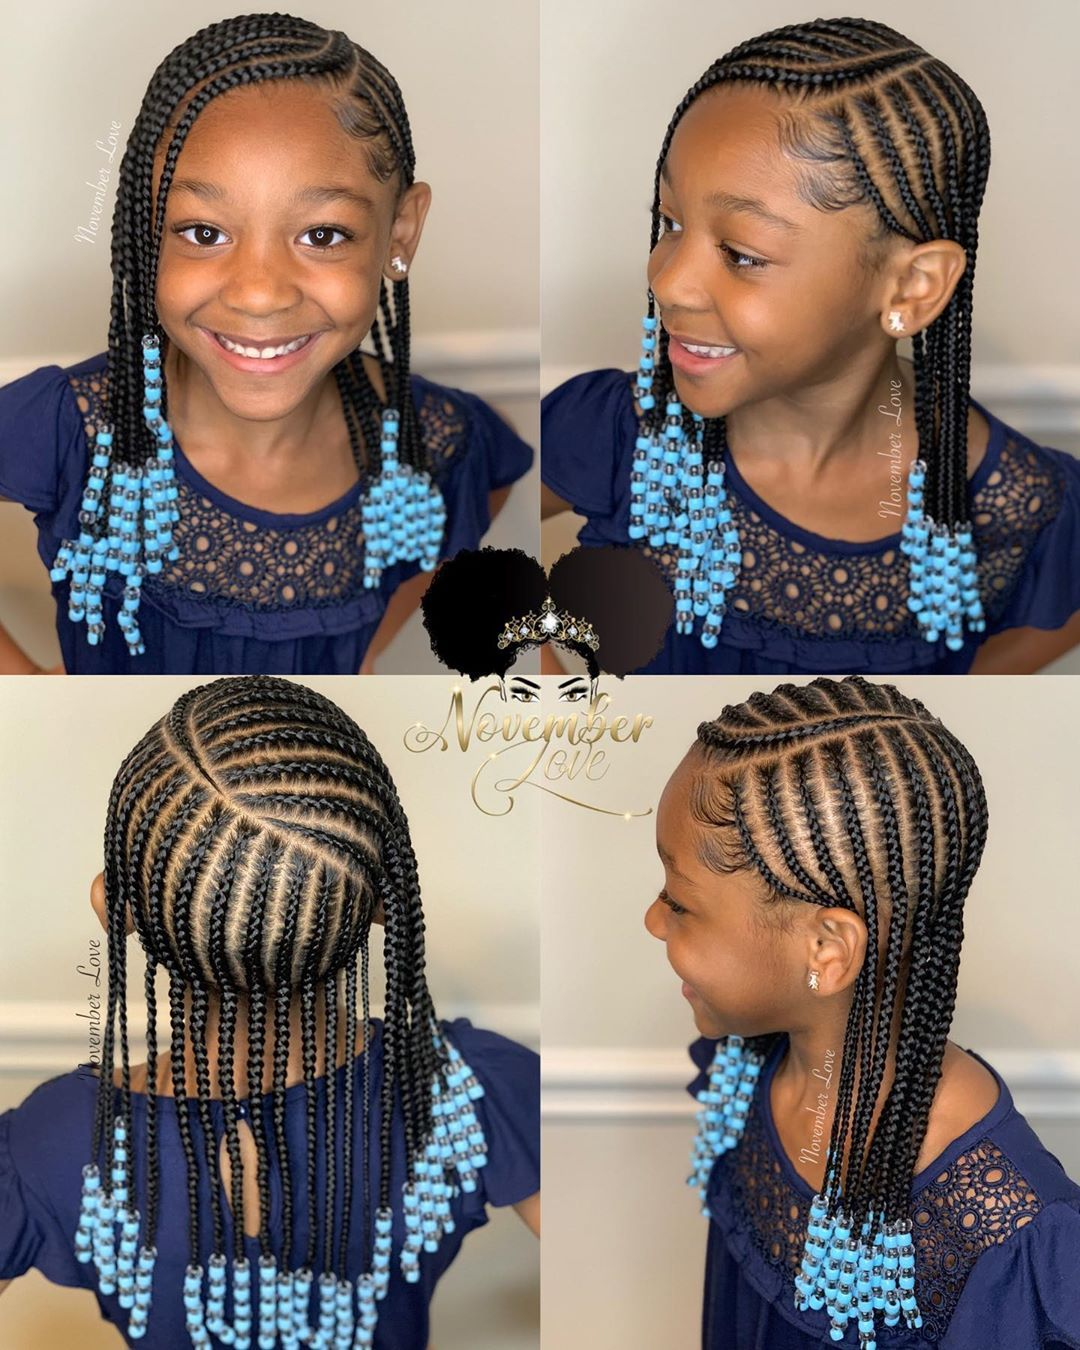 November Love On Instagram Children S Braids And Beads Booking Link In Bio Childrenhairstyles Brai Kids Hairstyles Kids Braids With Beads Braids For Kids